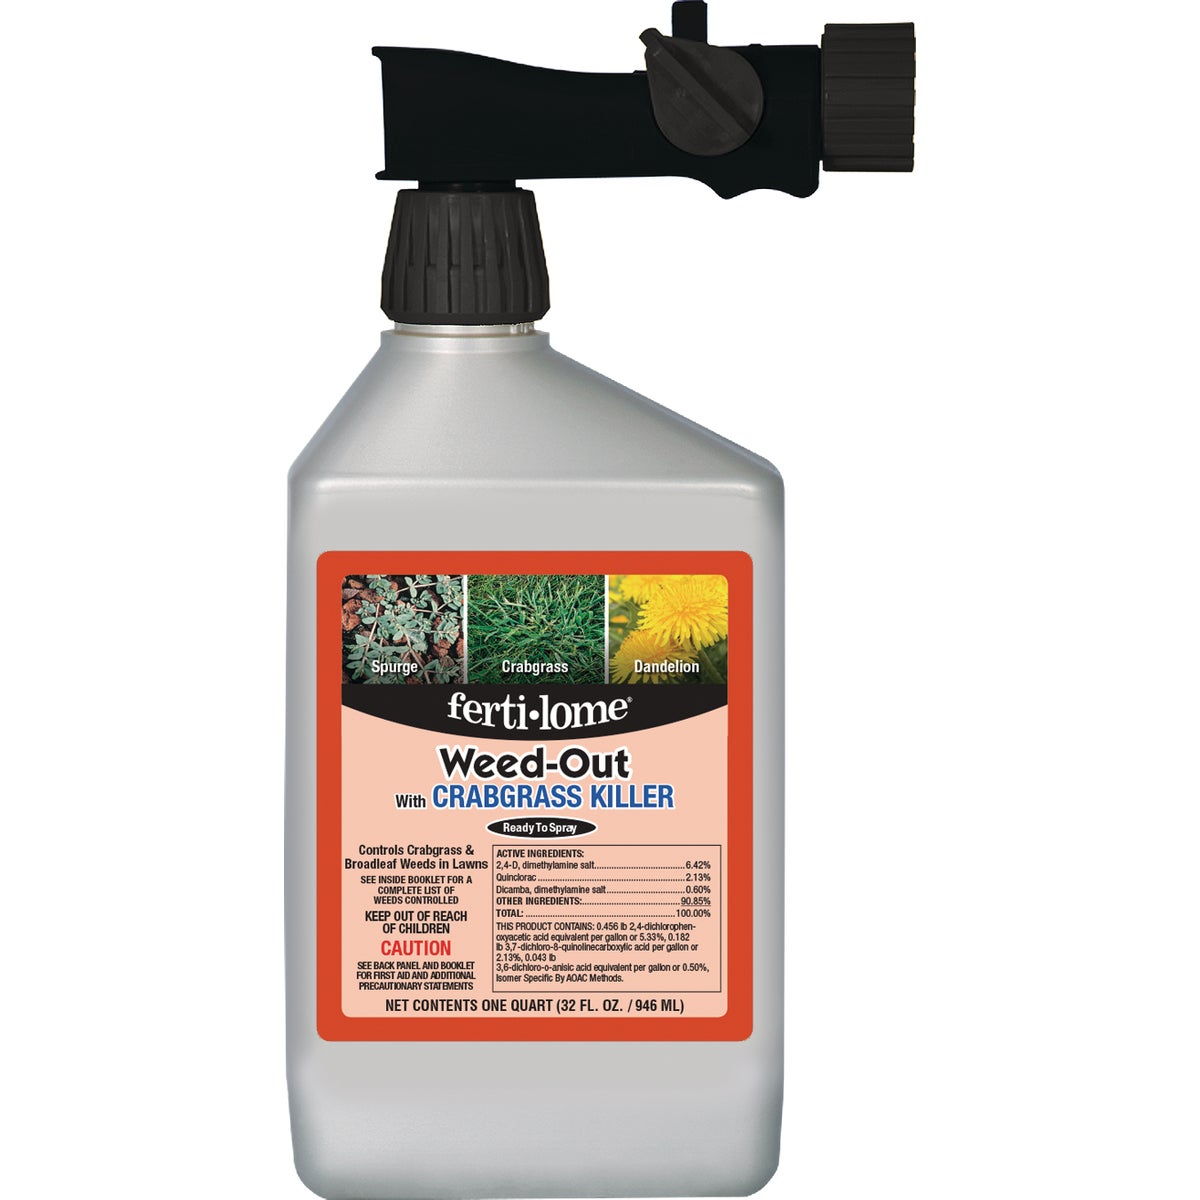 32OZ RTS WEED OUT WITH Q - 10031 by Vpg Fertilome